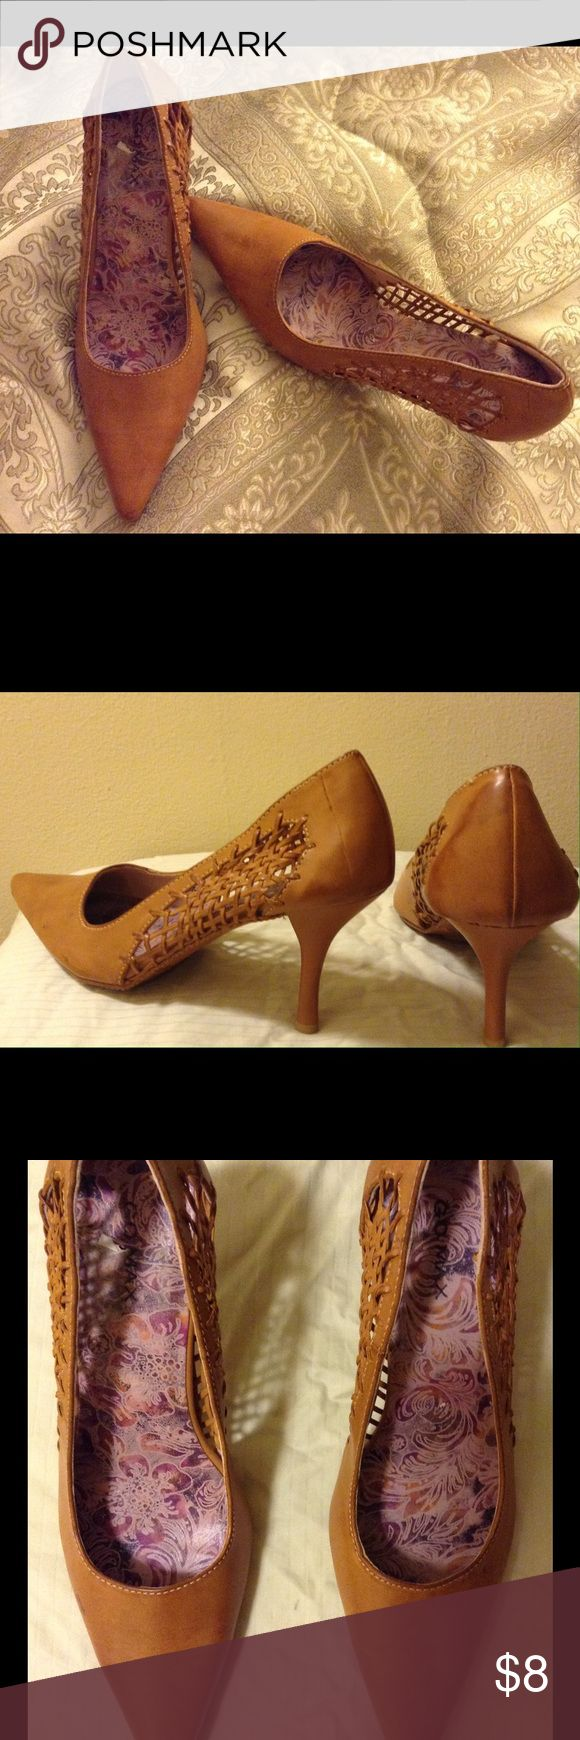 Tan high heel pumps/stiletto heels 2 1/2 inch heel Very snazzy tan high heels. Super nice with skinny or boot jeans. Trendy for the fall pair with leather or jean jackets 💕 all man made fabric looks a lot like leather TTS! Shoes Heels